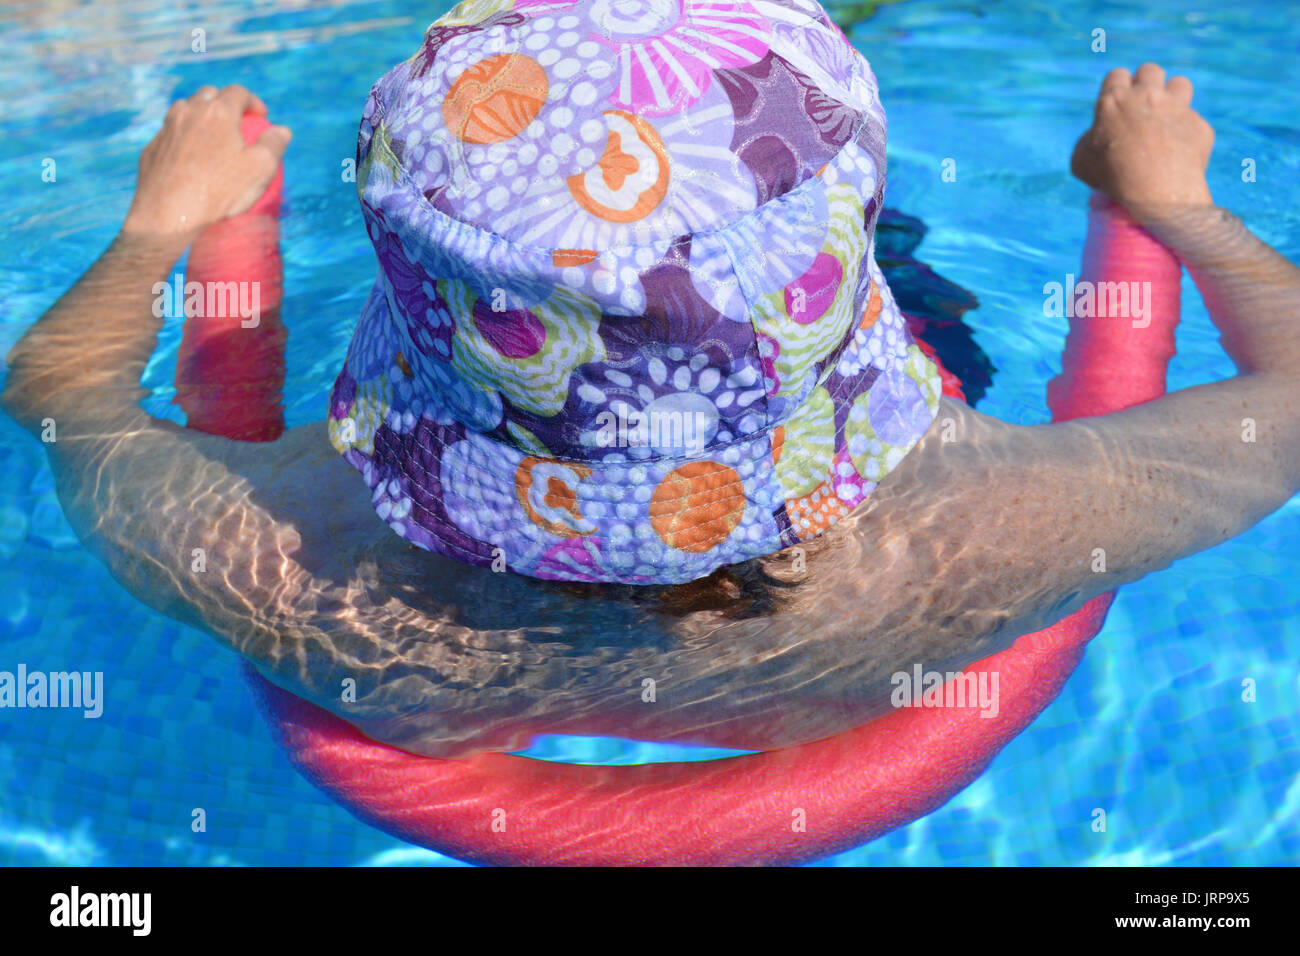 Summer vibes! Woman floating in a swimming pool using a pool noodle. - Stock Image